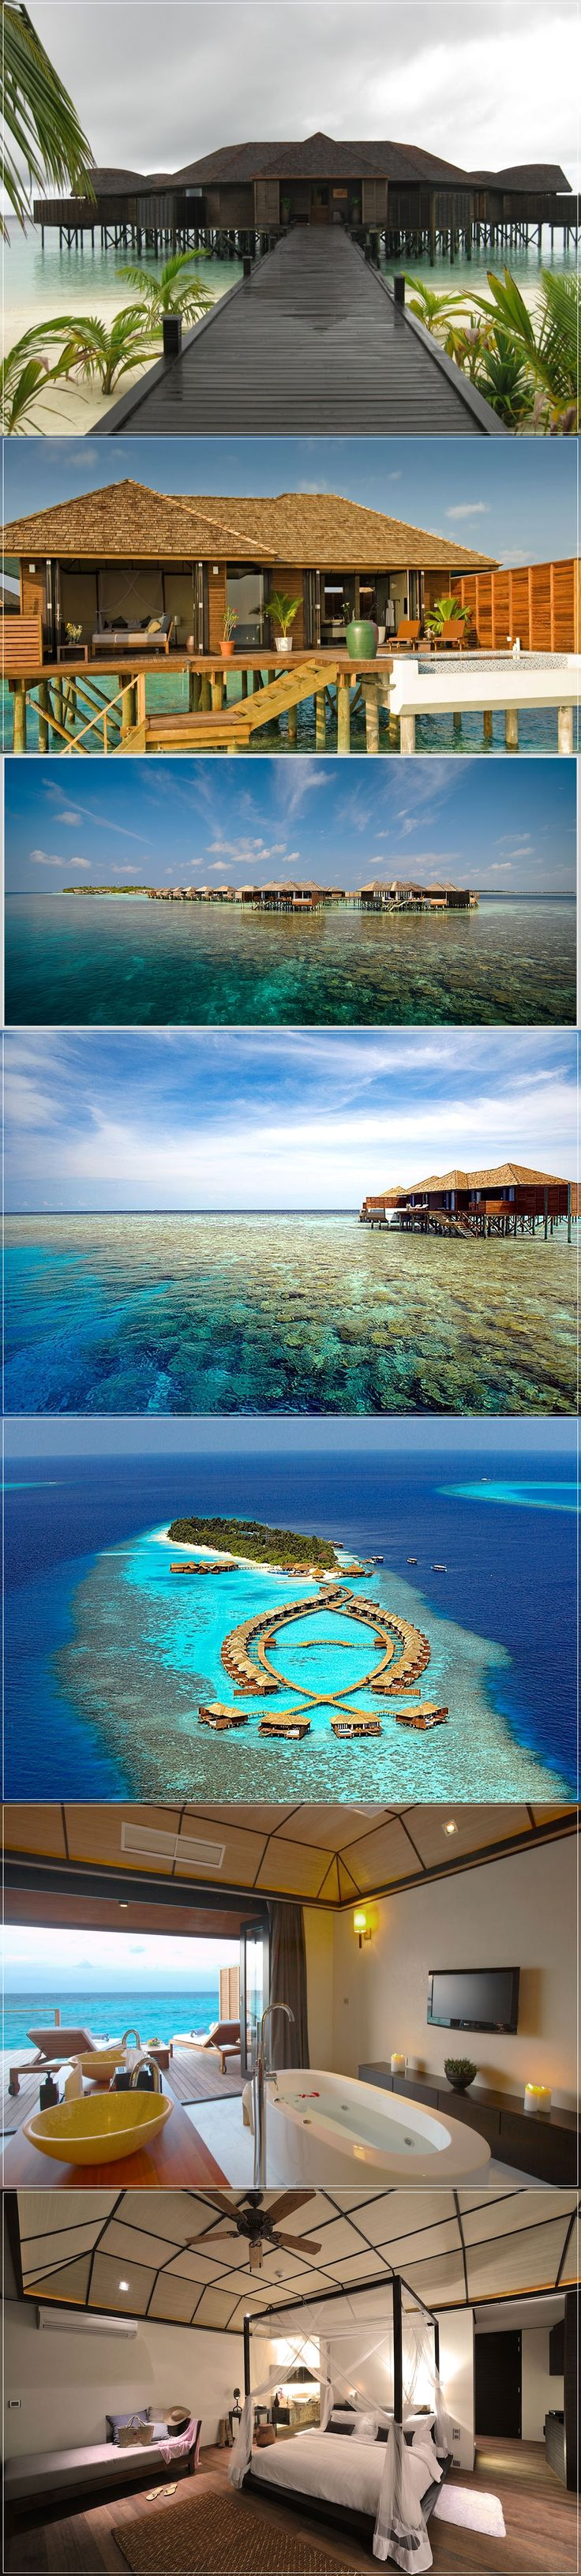 Lily Beach Resort and Spa is nominated as one of the best luxury resort for vacation. Come and experience the Luxury Resort of Lily Beach Resort & Spa at Maldives.